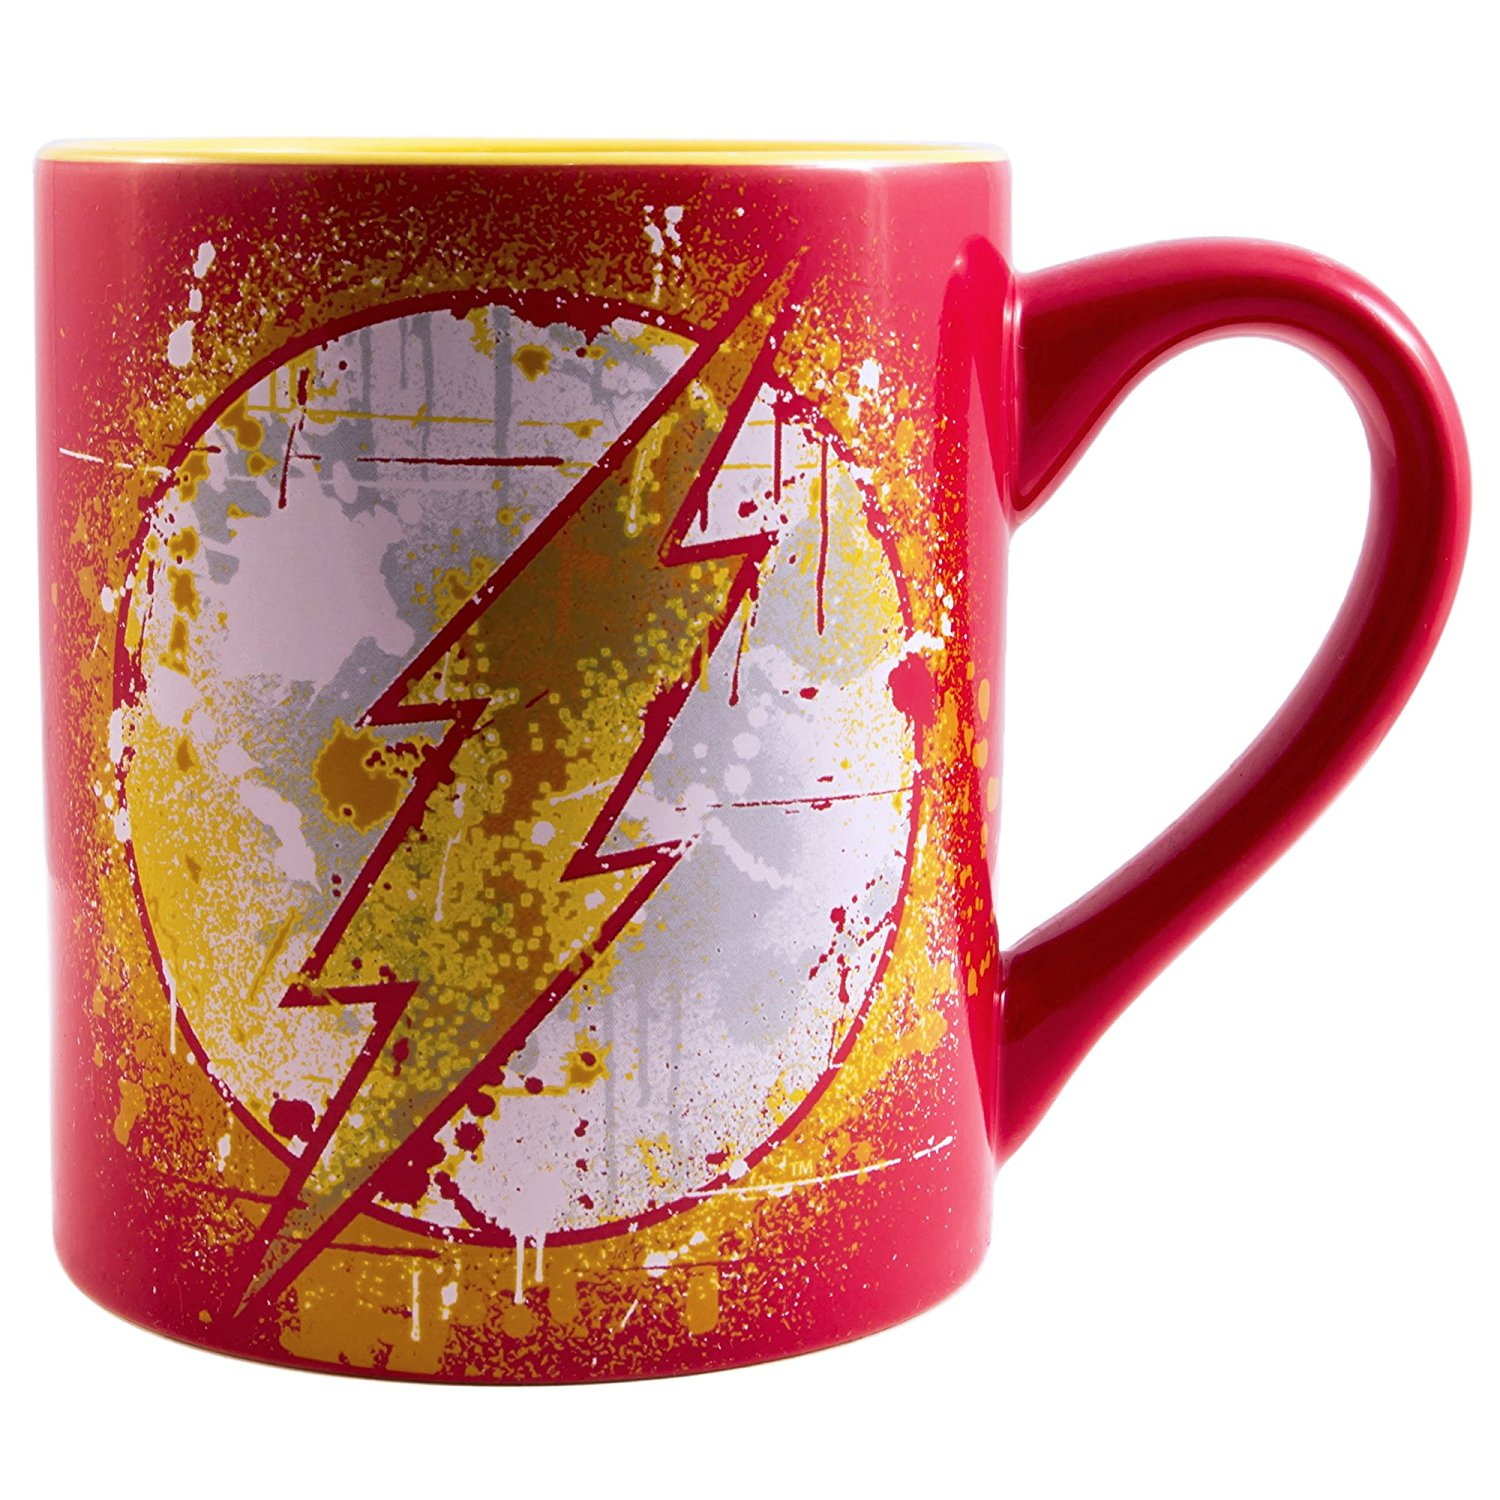 Paint Splatter Flash Mug